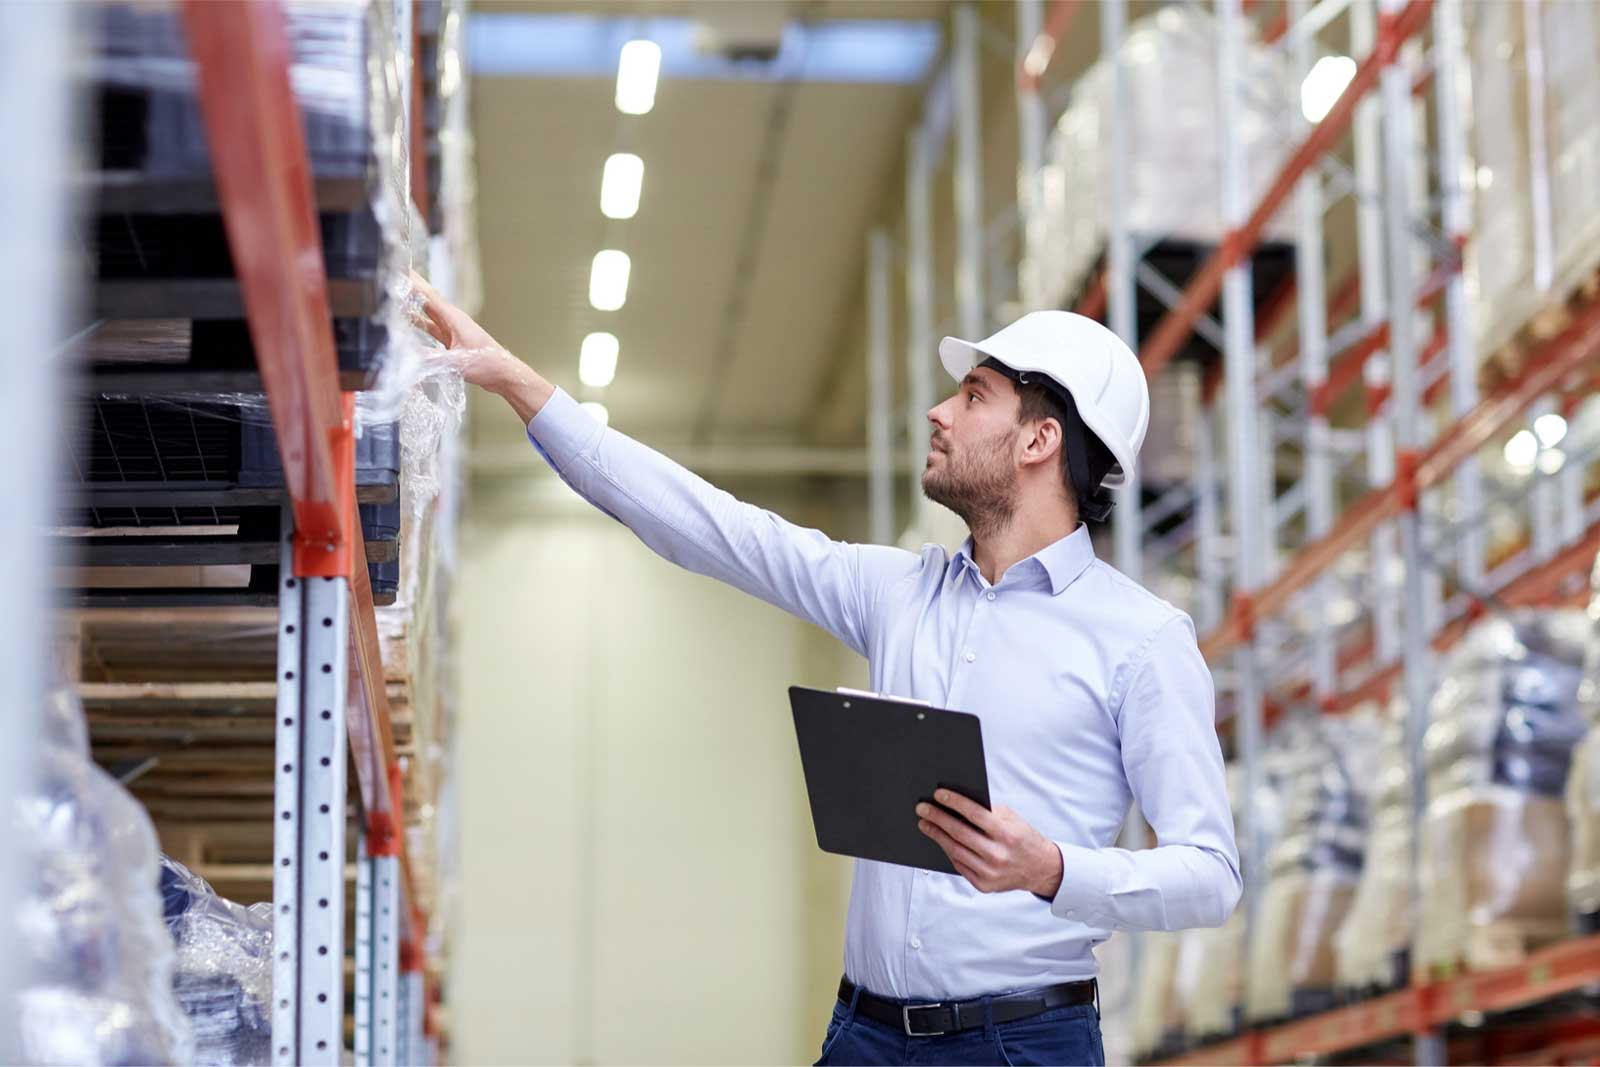 Supply chain execution for some firms is an increasingly critical dimension of marketing, differentiation, and defensible competitive advantage.